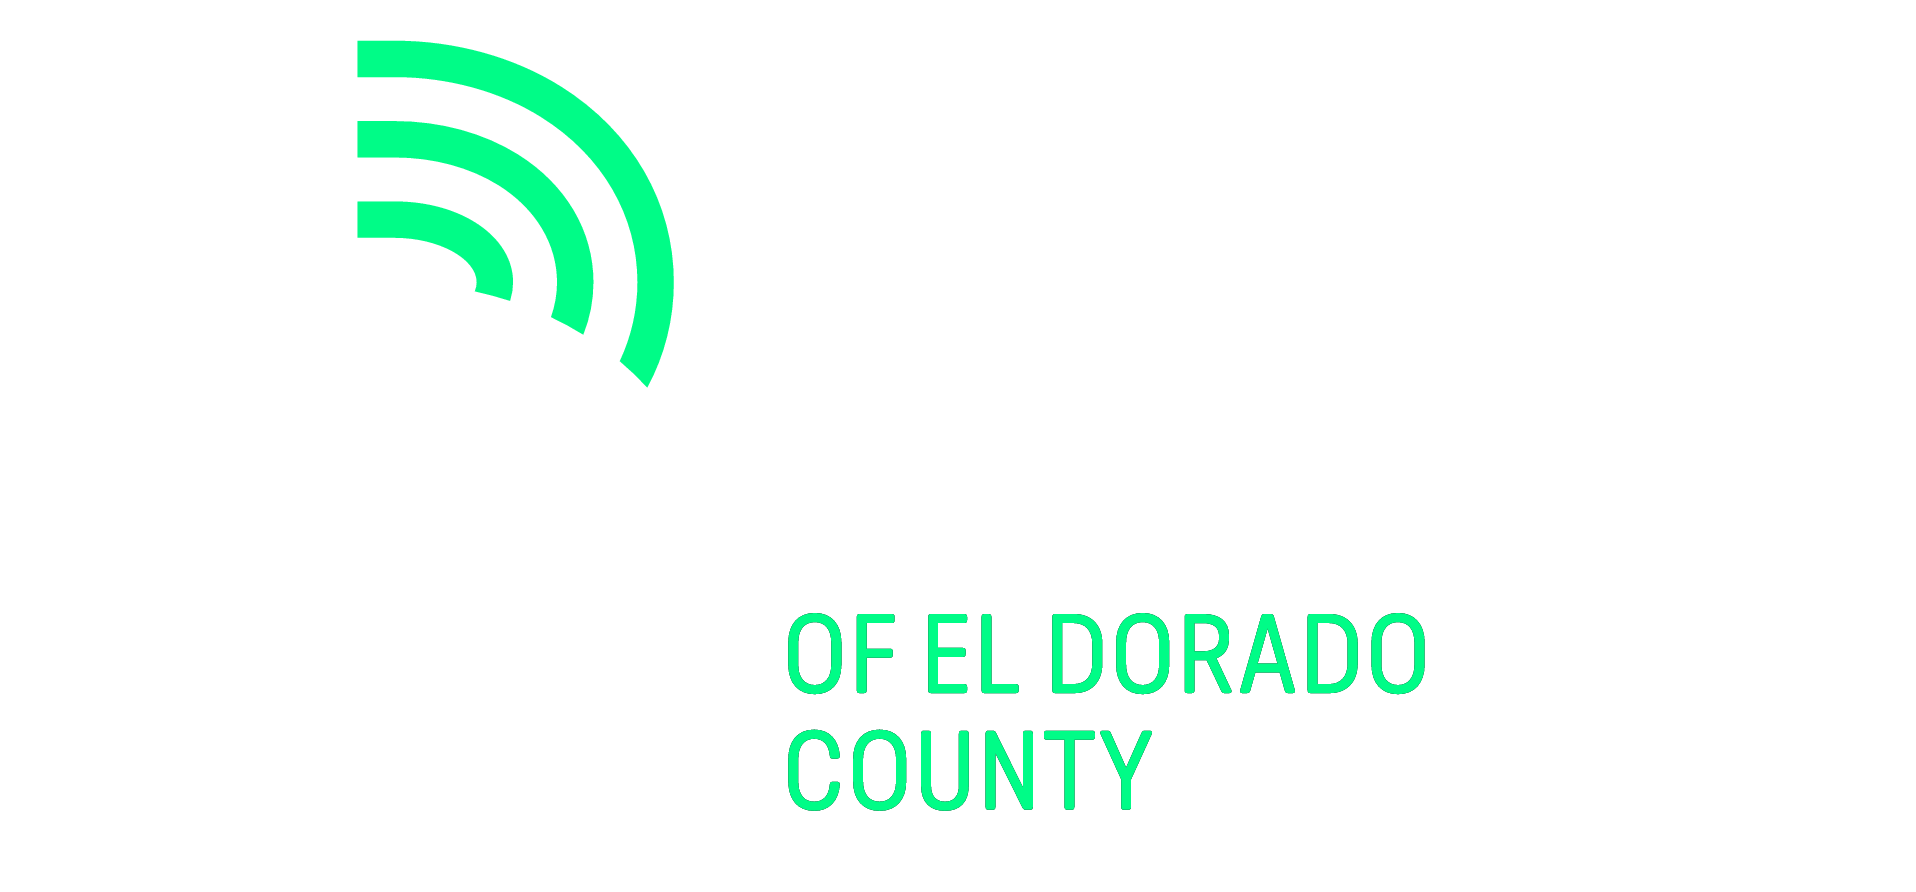 Big Brothers Big Sisters of El Dorado County